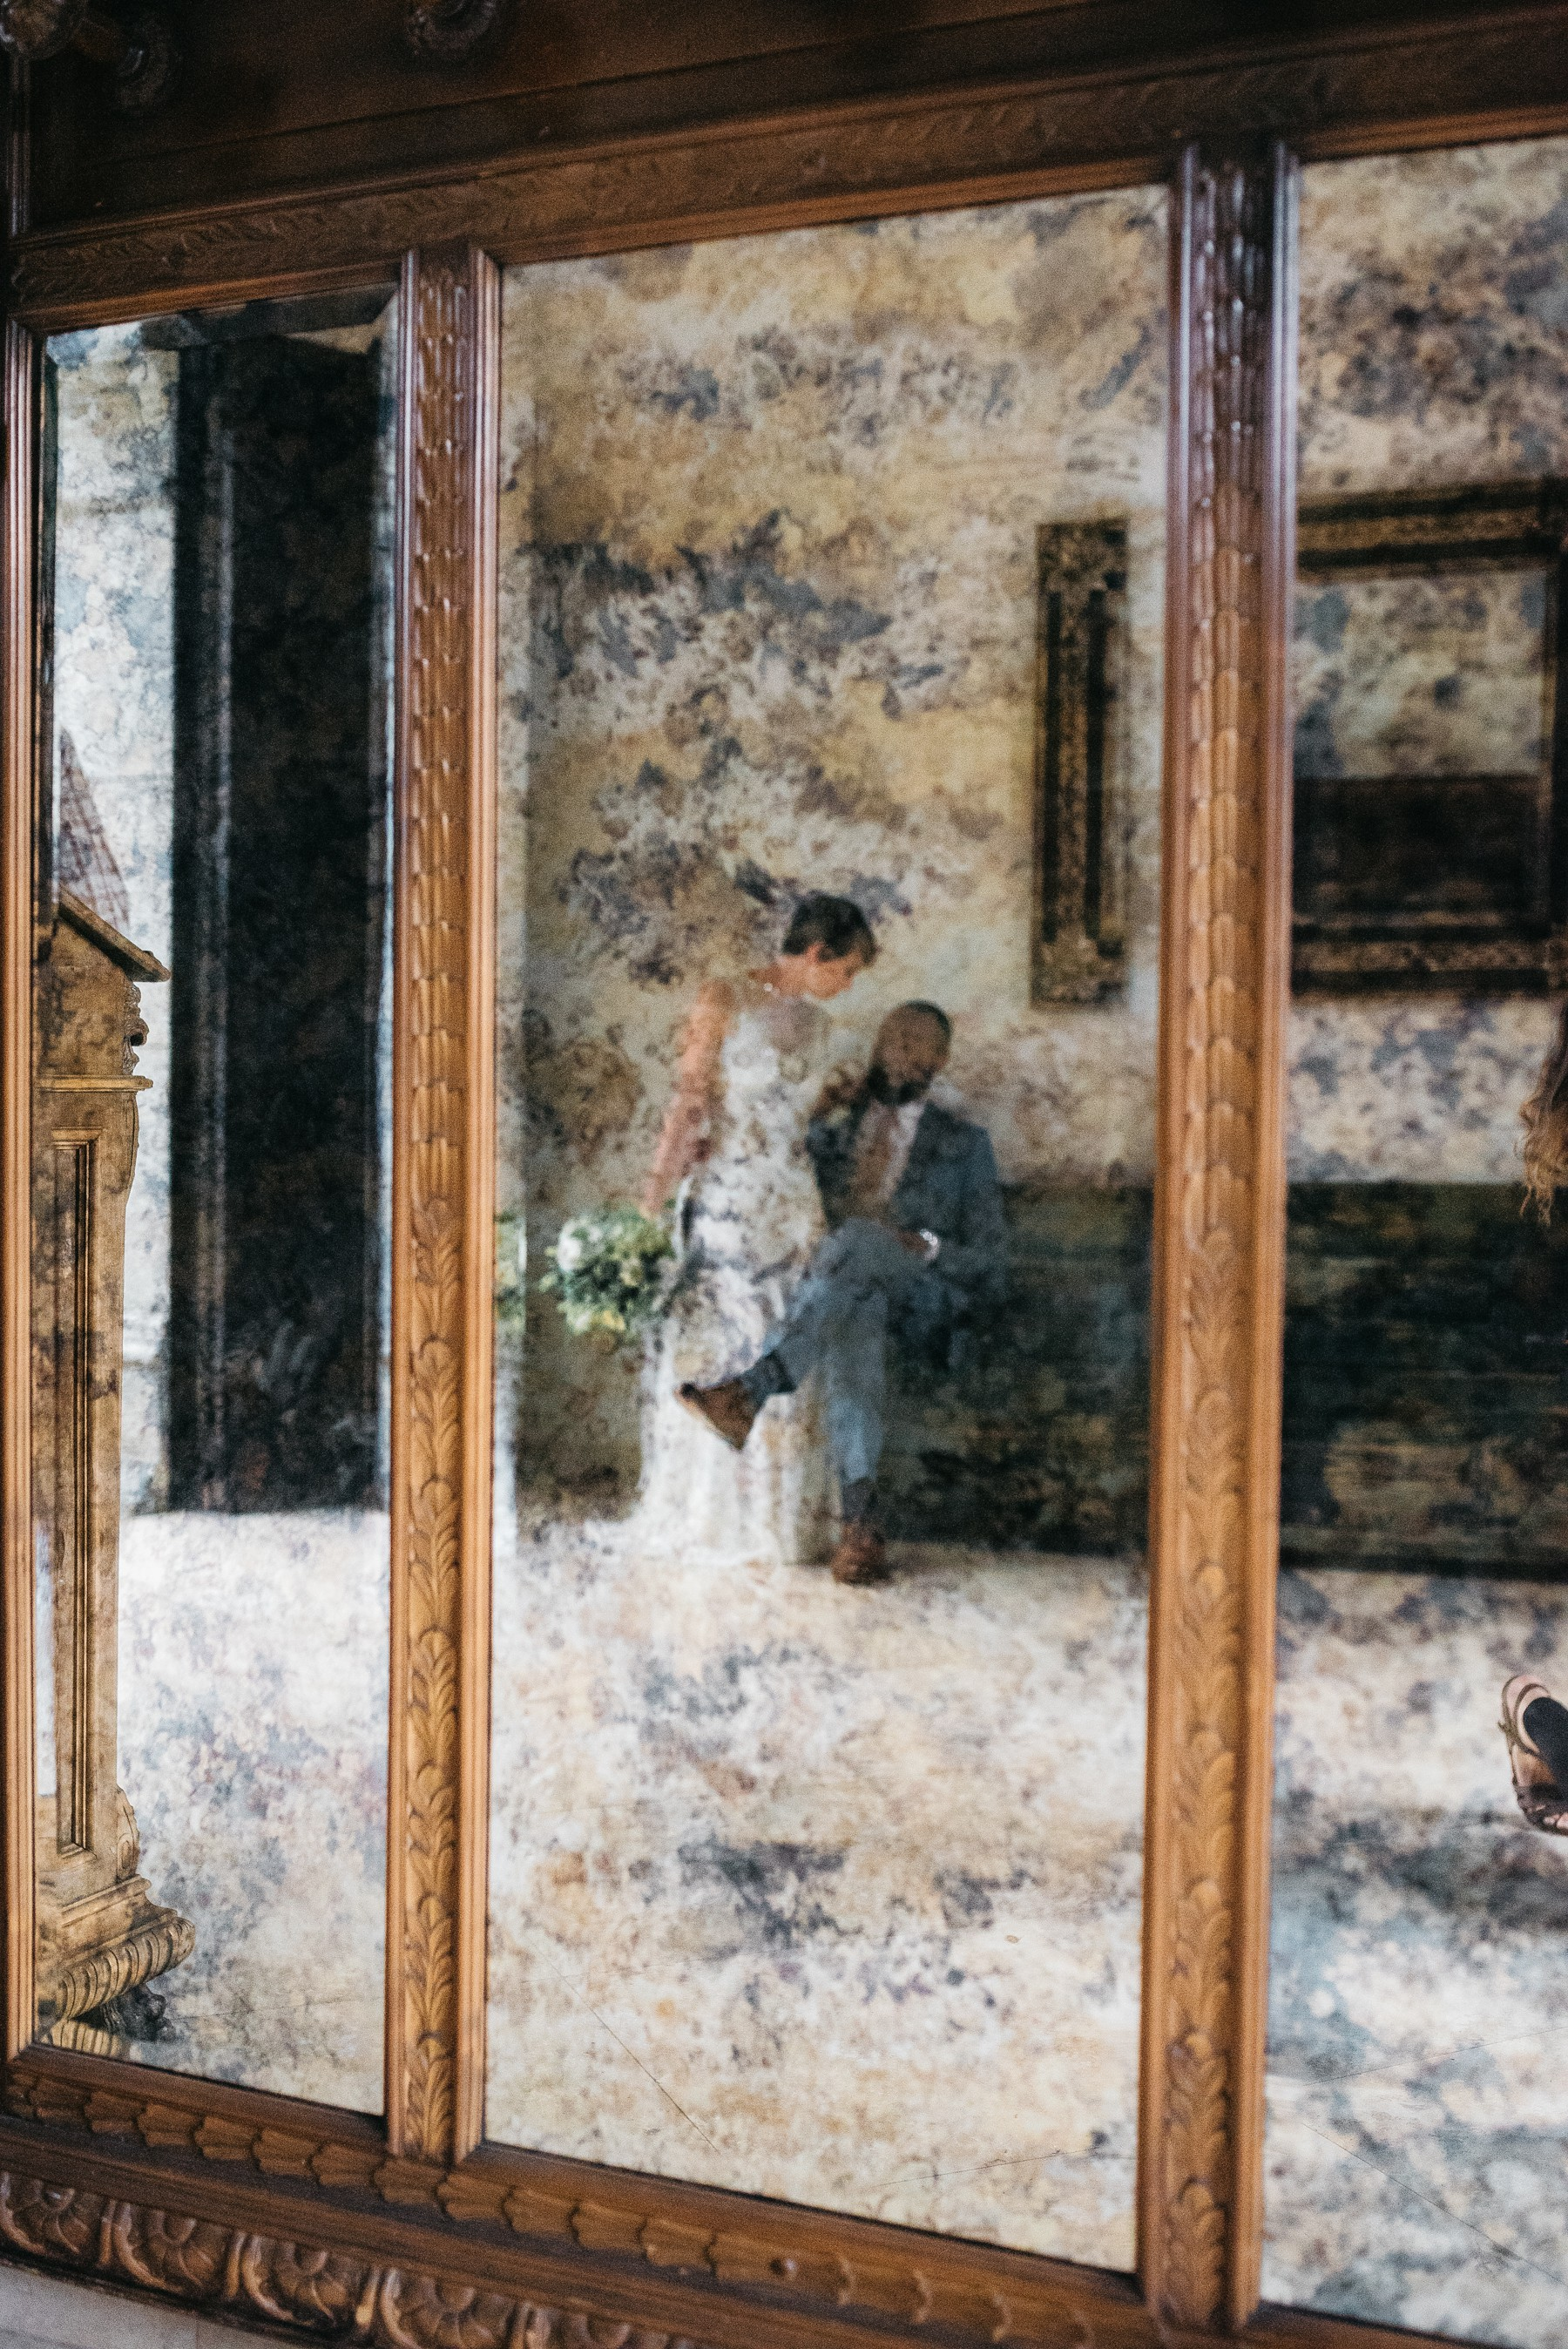 Wedding Photo Mirror Reflection